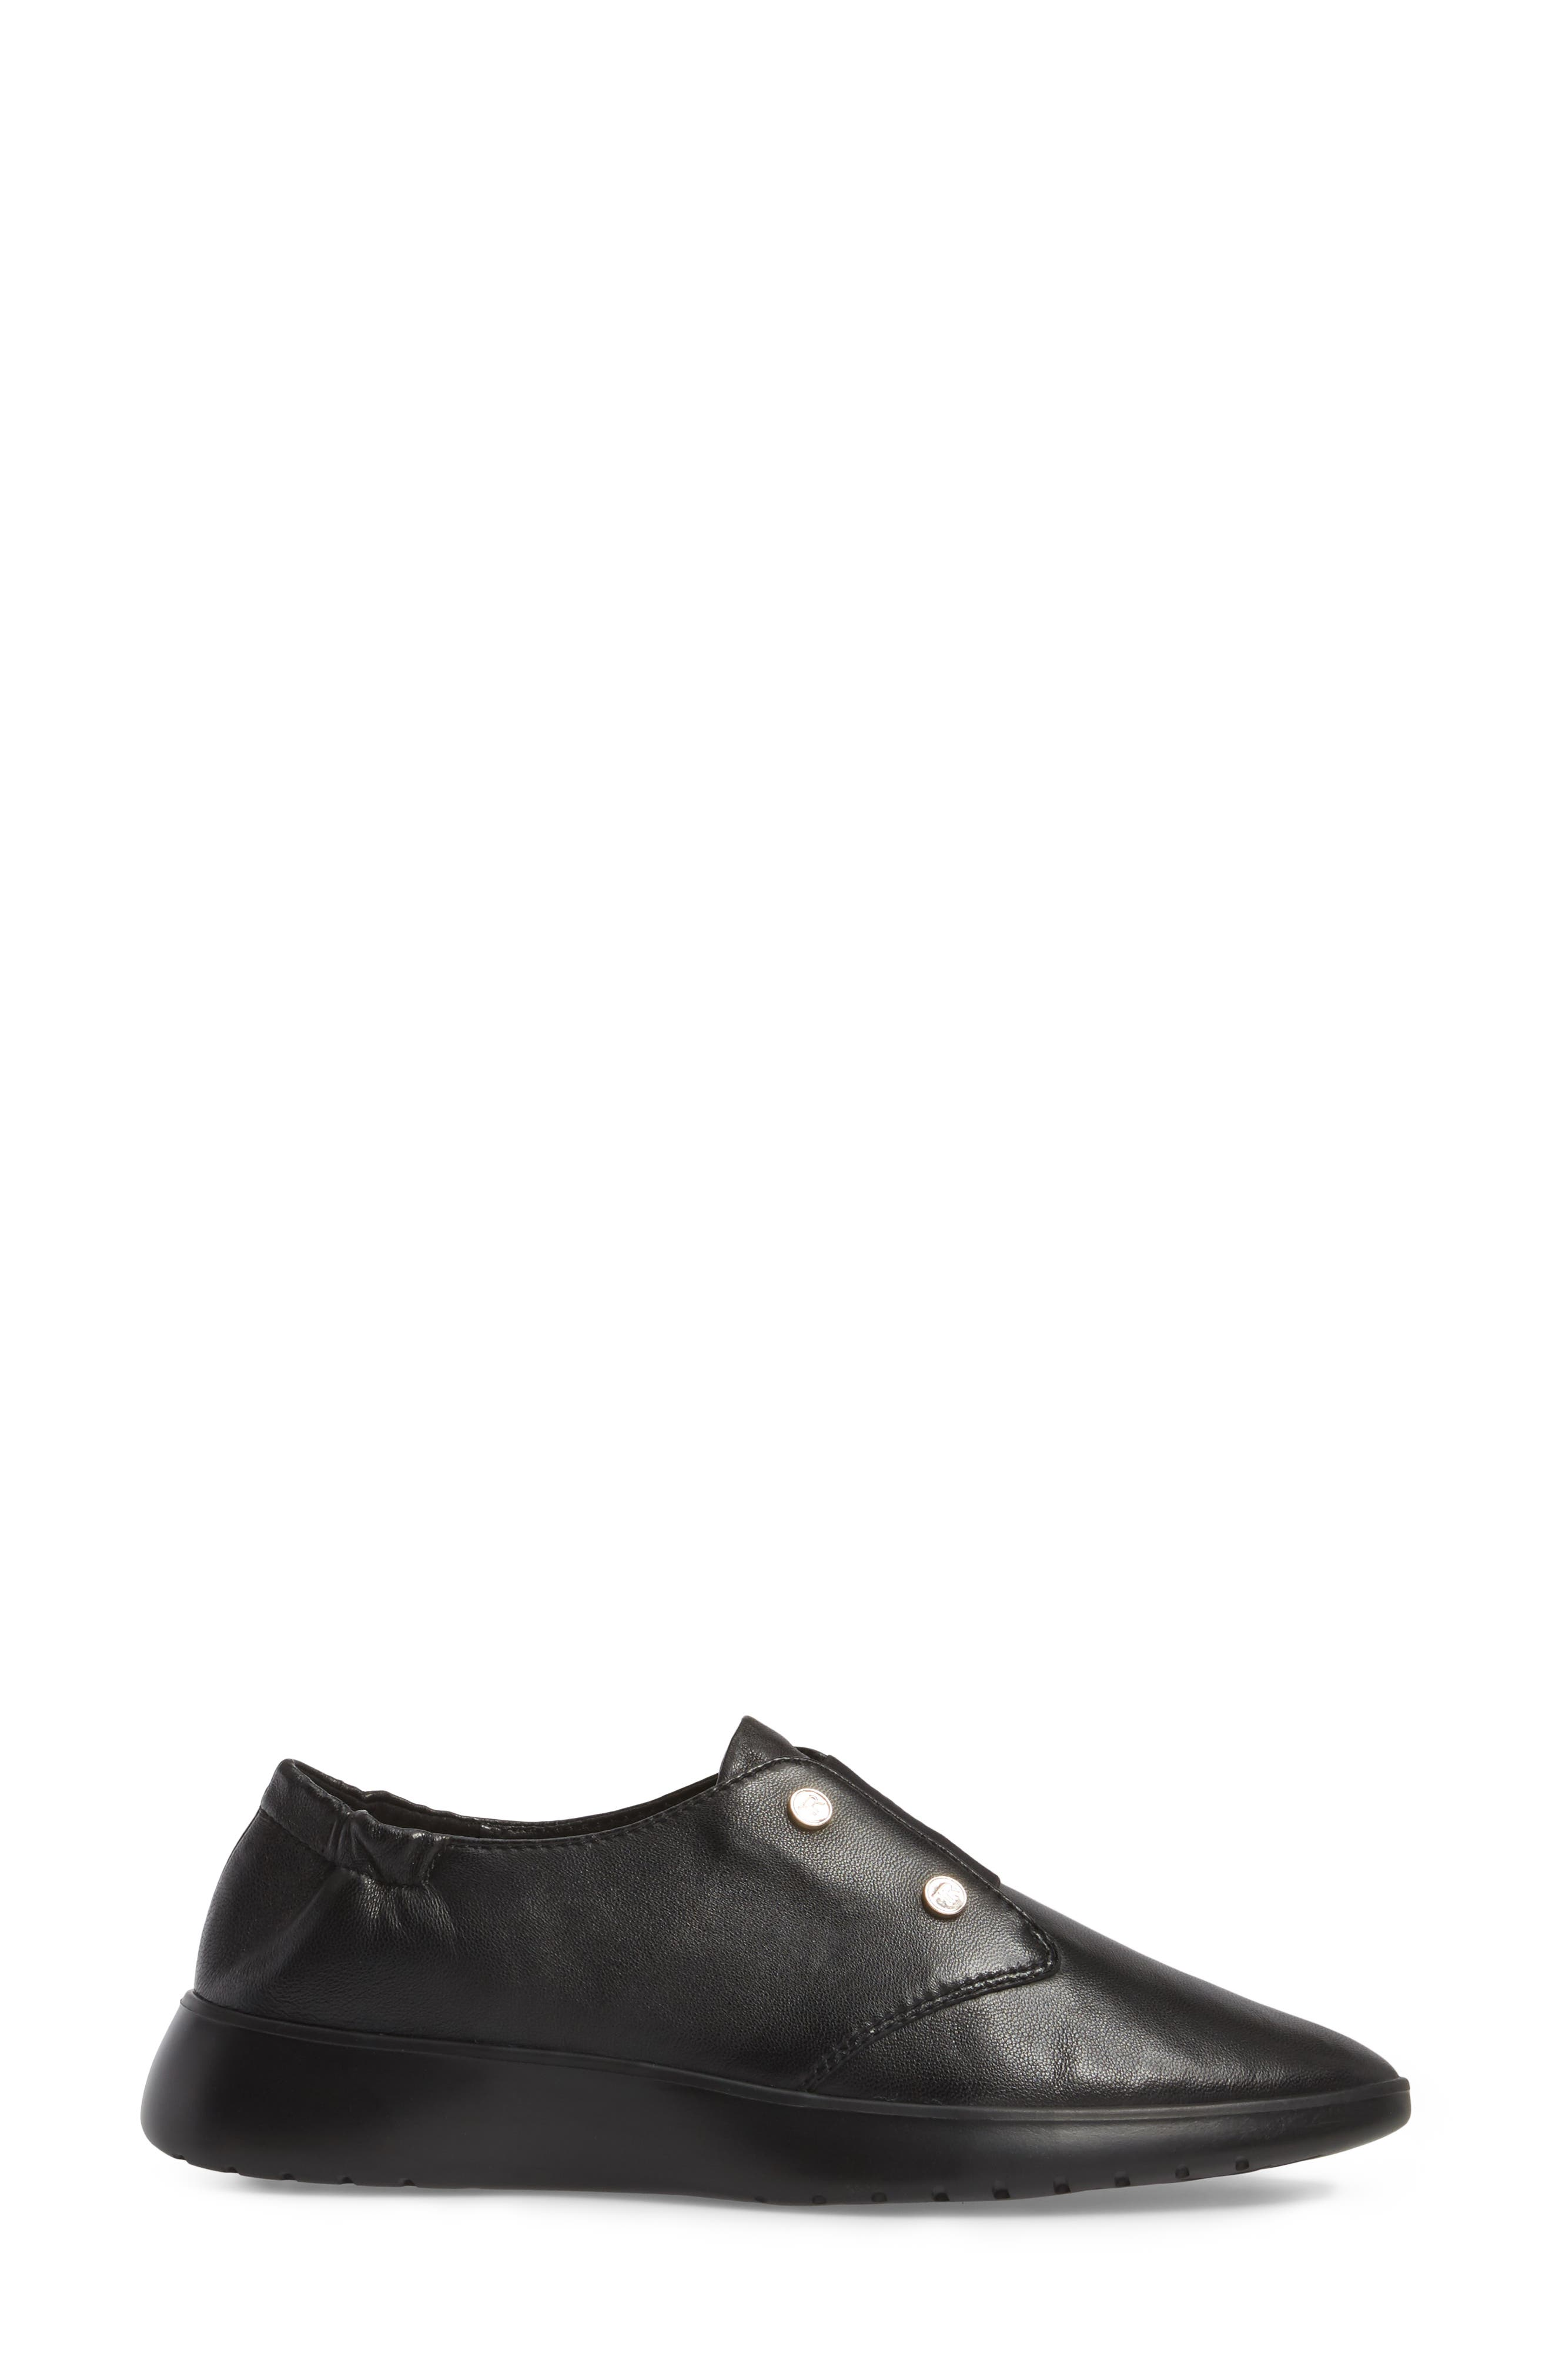 Darcy Slip-On Oxford,                             Alternate thumbnail 3, color,                             Black Leather